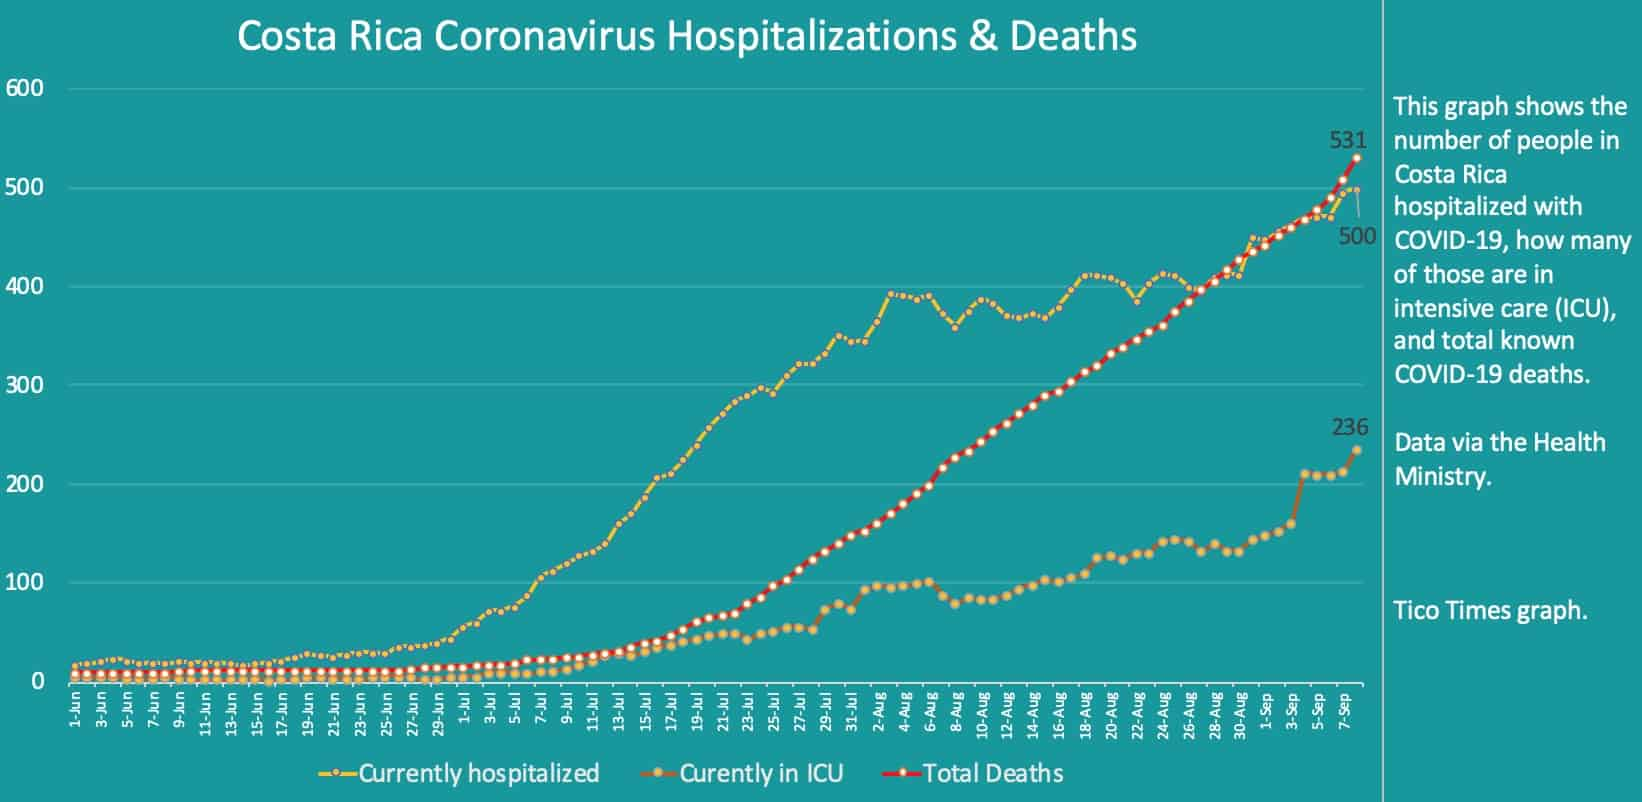 Costa Rica coronavirus hospitalizations and deaths on September 8, 2020